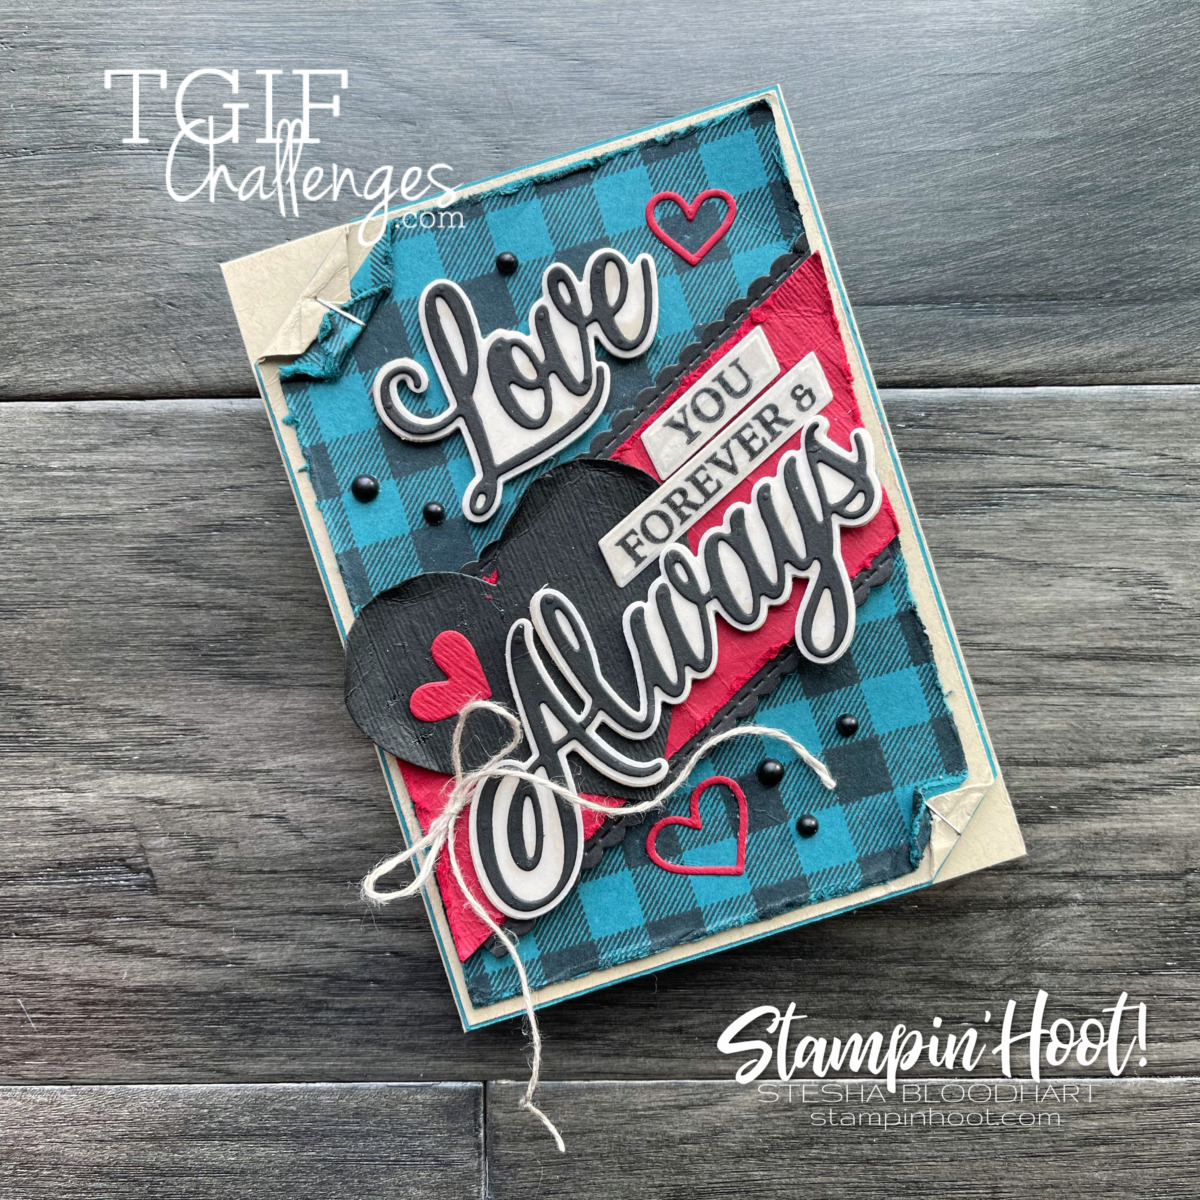 Forever & Always Bundle from Stampin' Up! Mad for Plaid Challenge #tgifc301 Designer Takeover Stesha Bloodhart